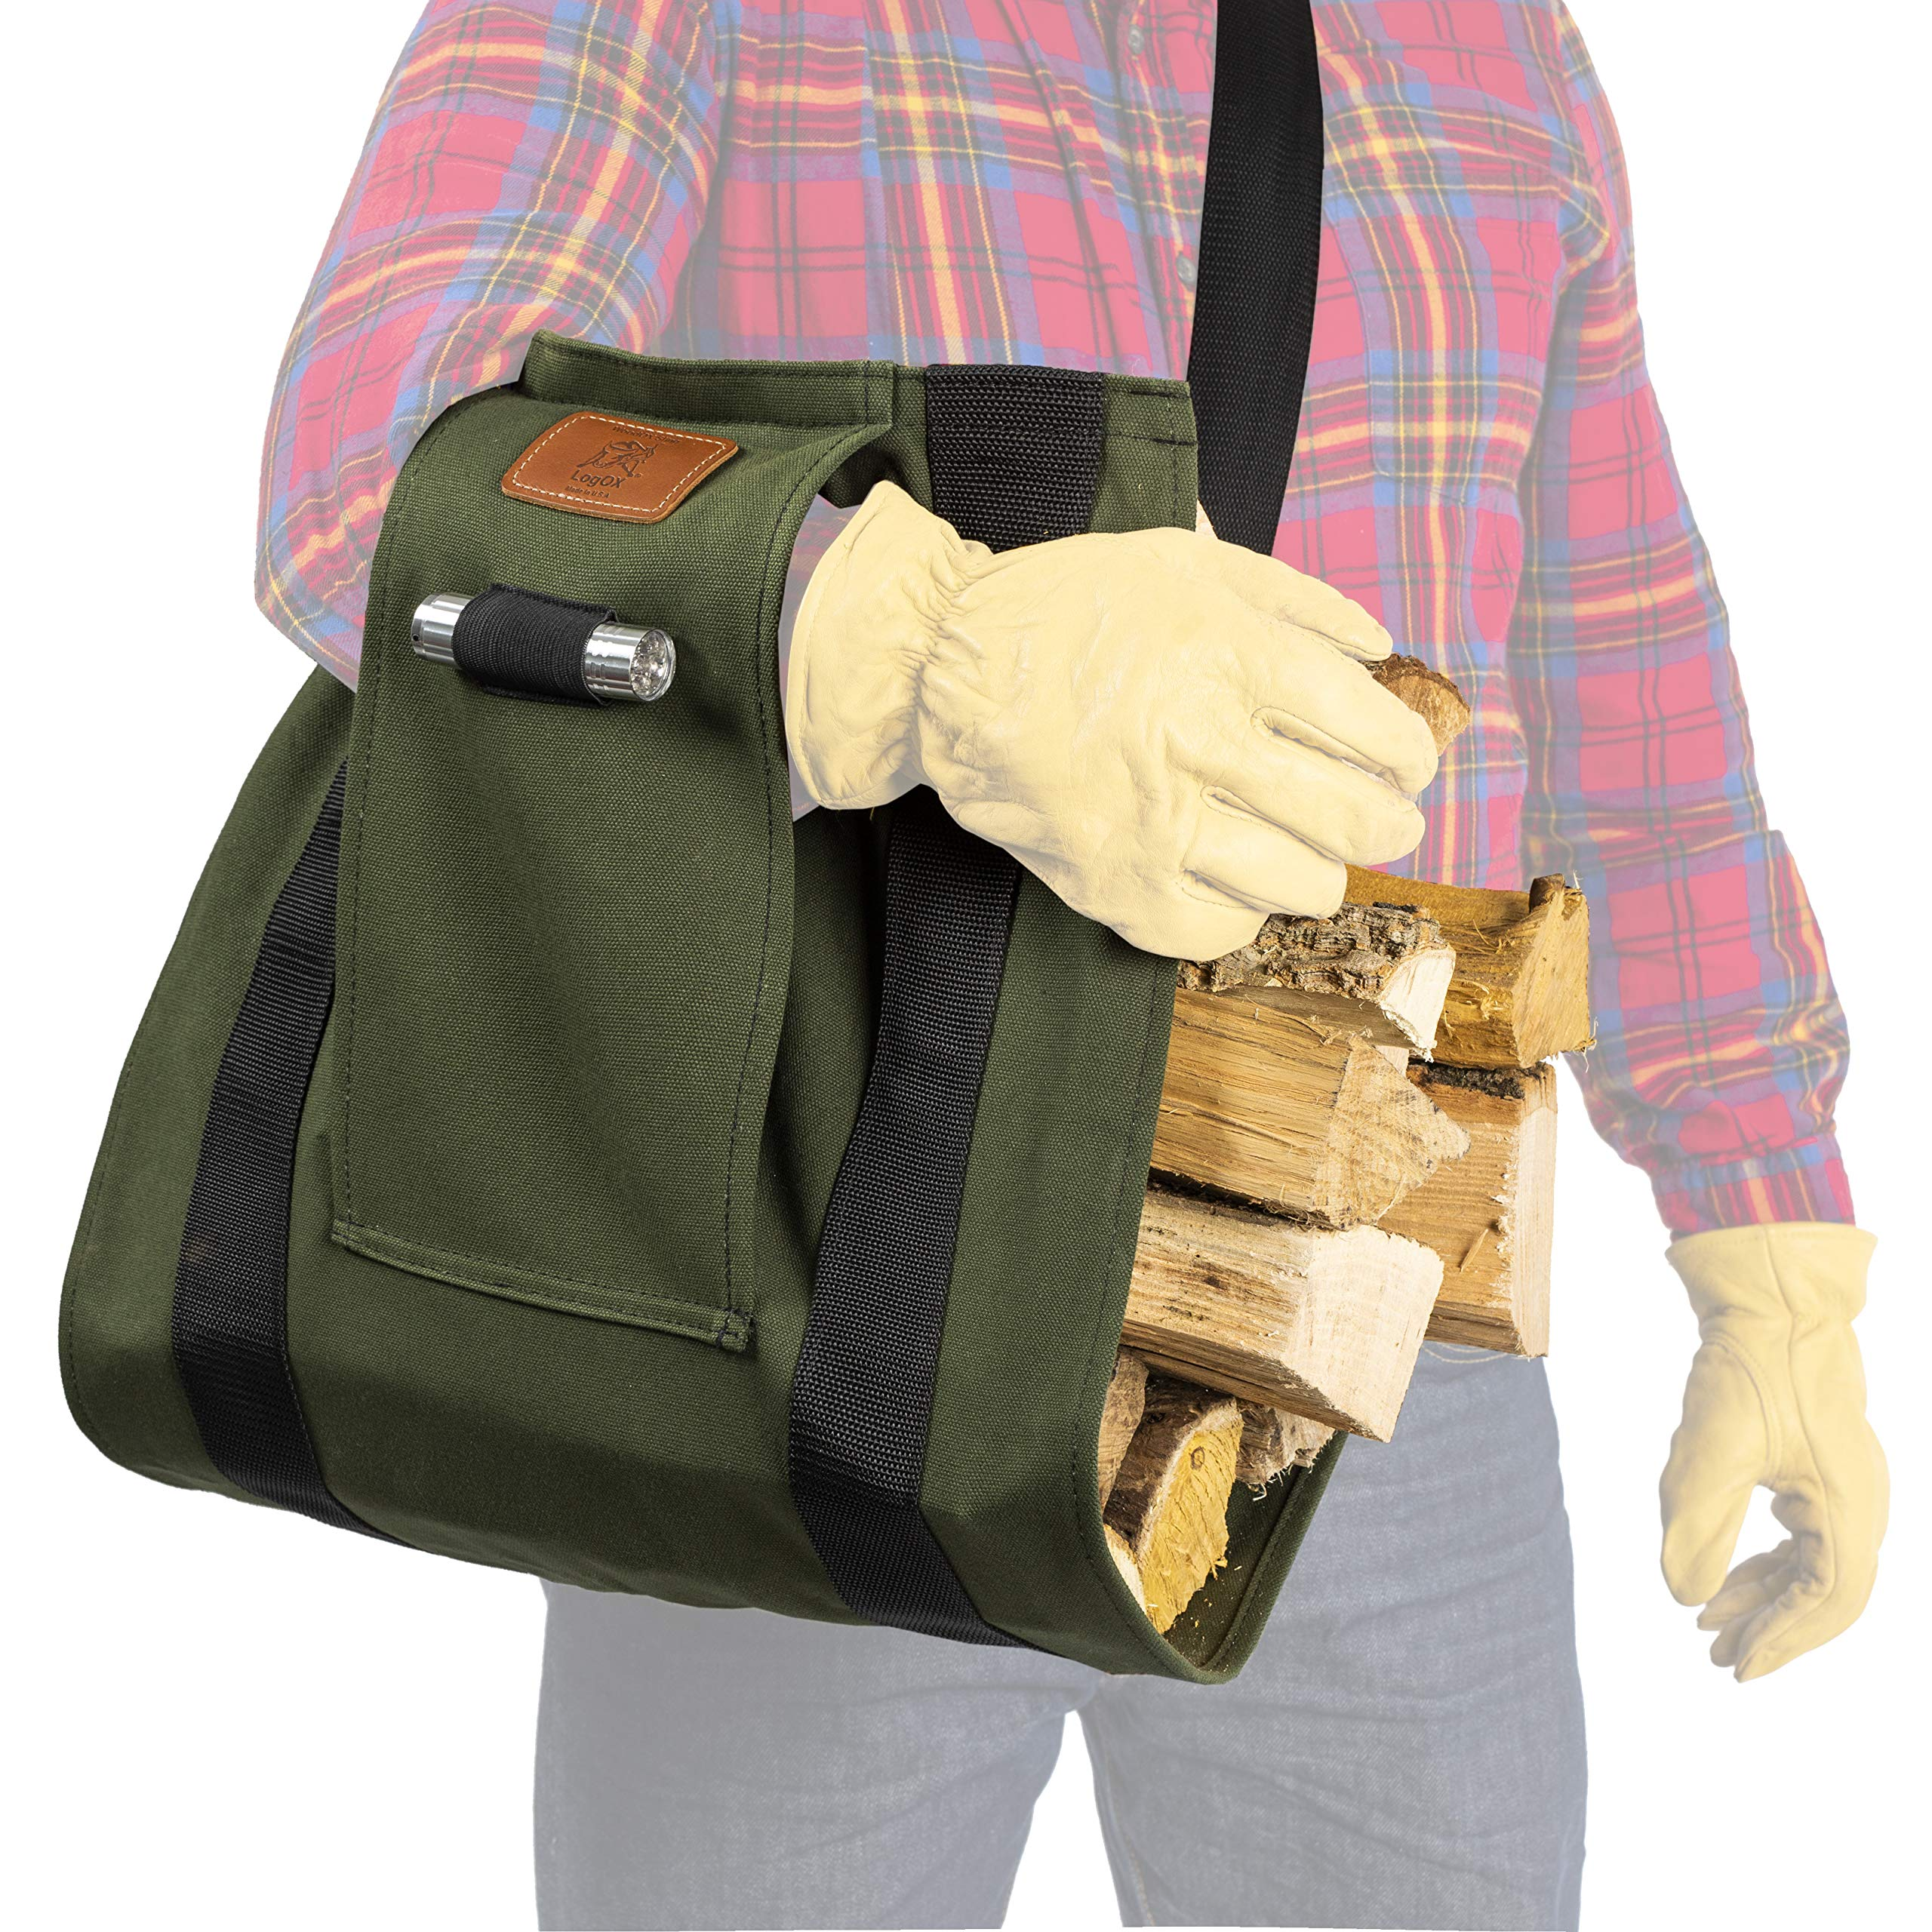 LogOX WoodOX Sling- The World's Most Ergonomic Firewood, Kindling, and Log Carrier - Designed in Vermont and Made in The USA (Patent Pending) by LogOX